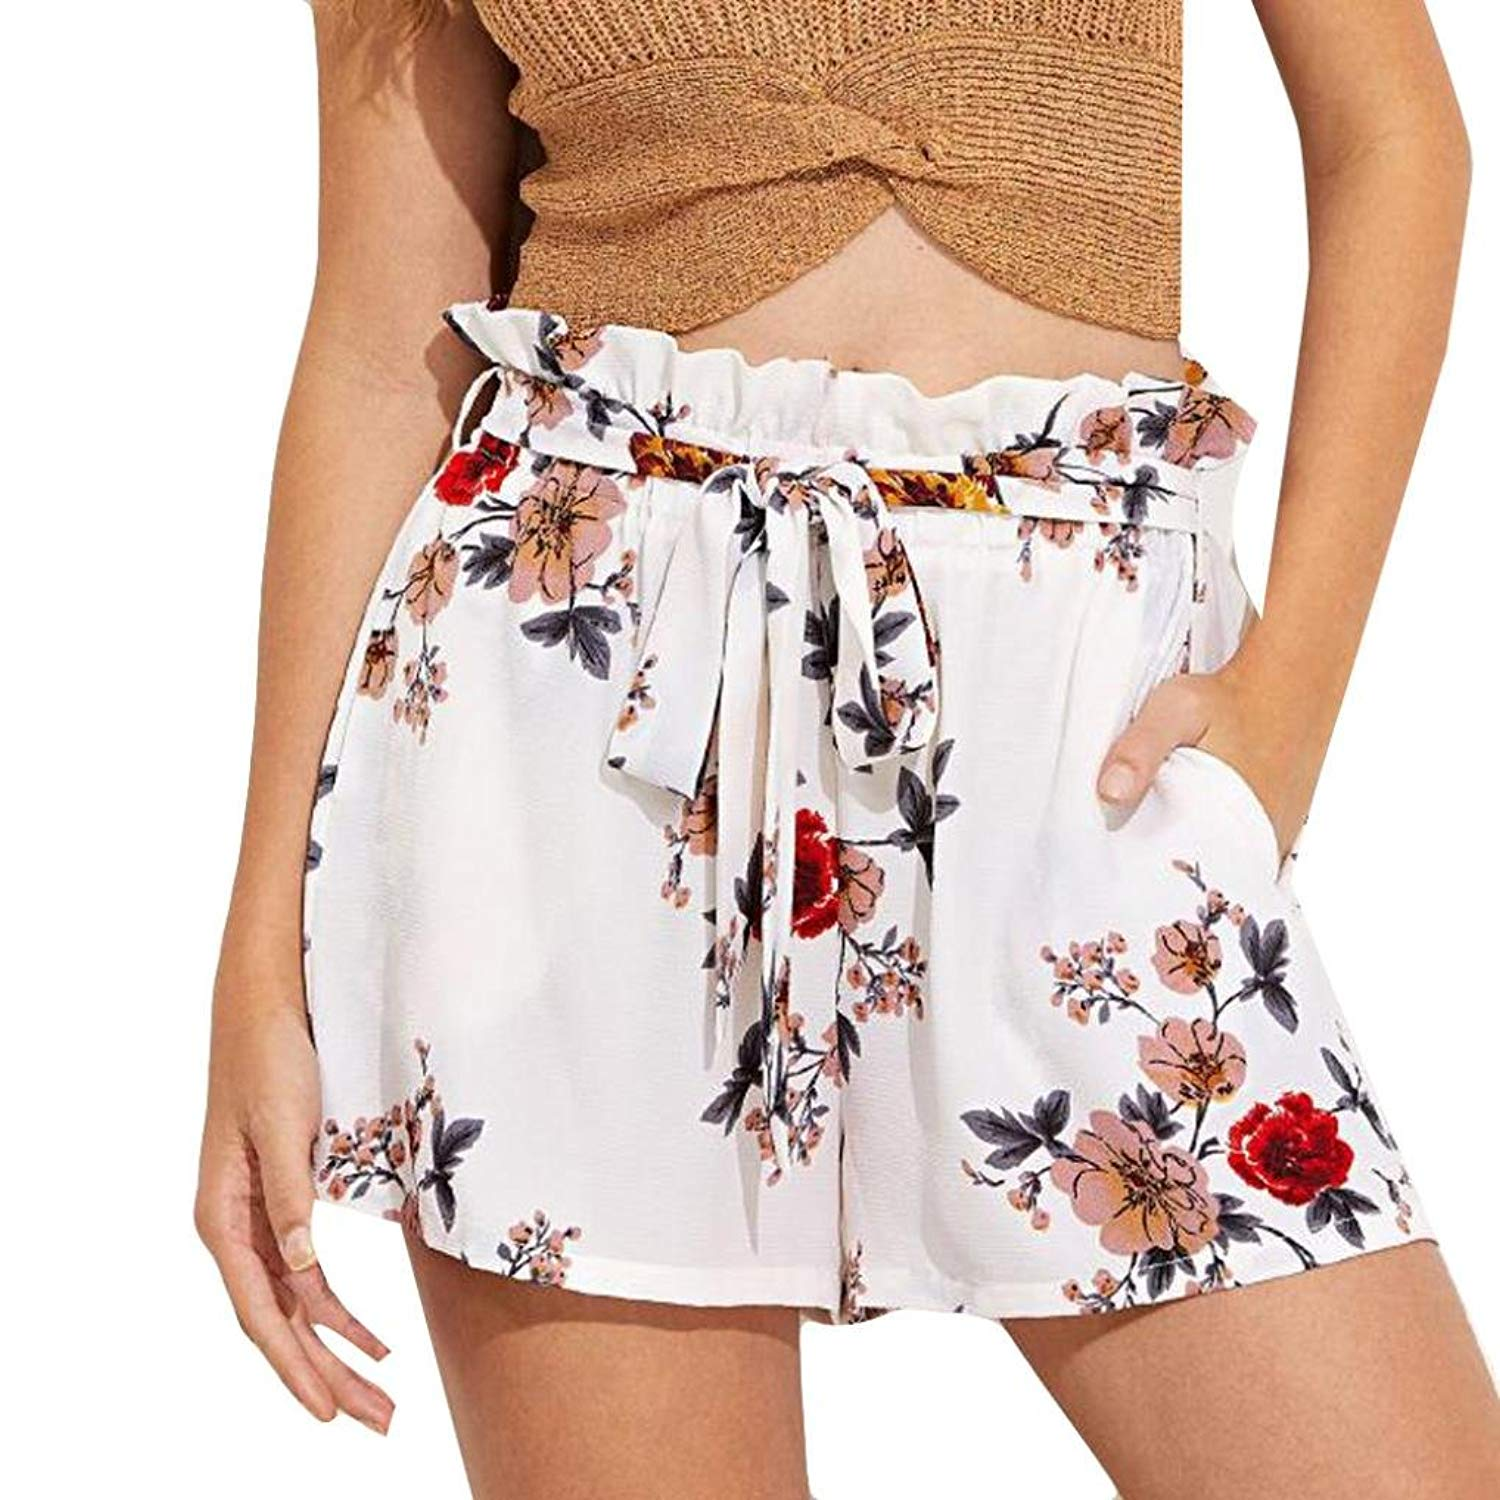 BCDshop_Shorts Women Floral Fashion Belt Shorts Trousers Lady Summer Beach Hot Pants